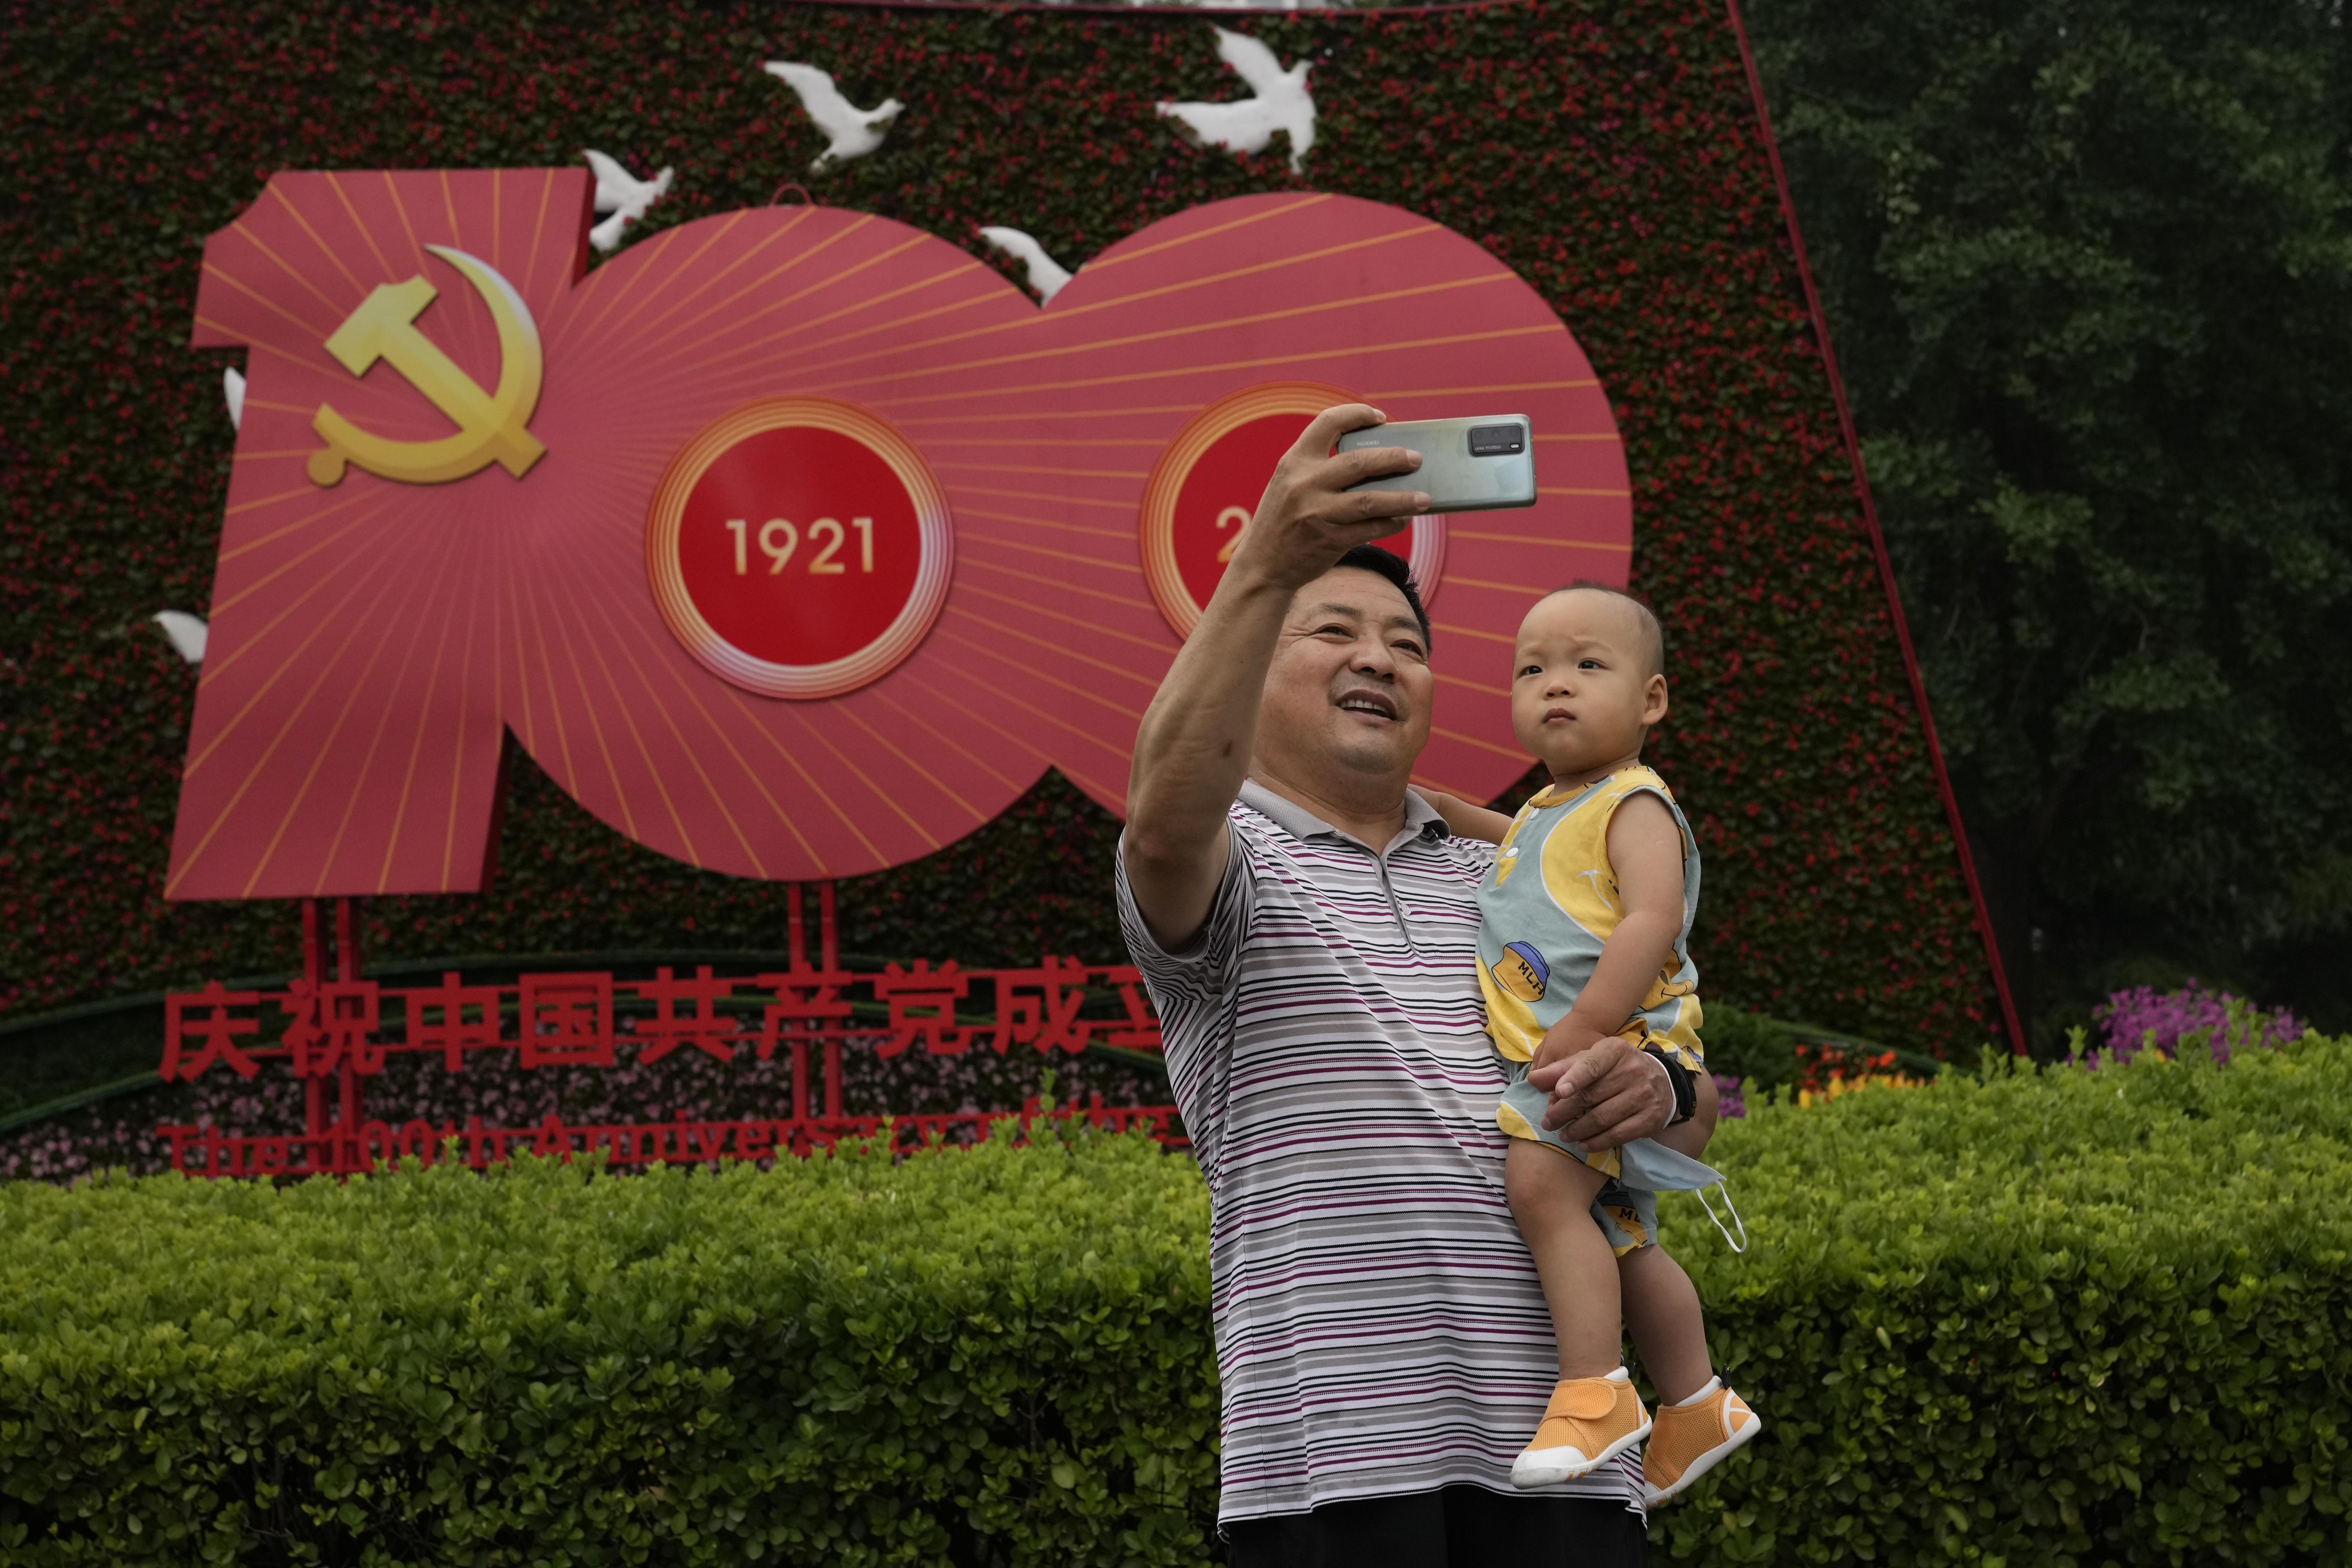 Chinese Communists prepare for 100th birthday, take stock of achievements